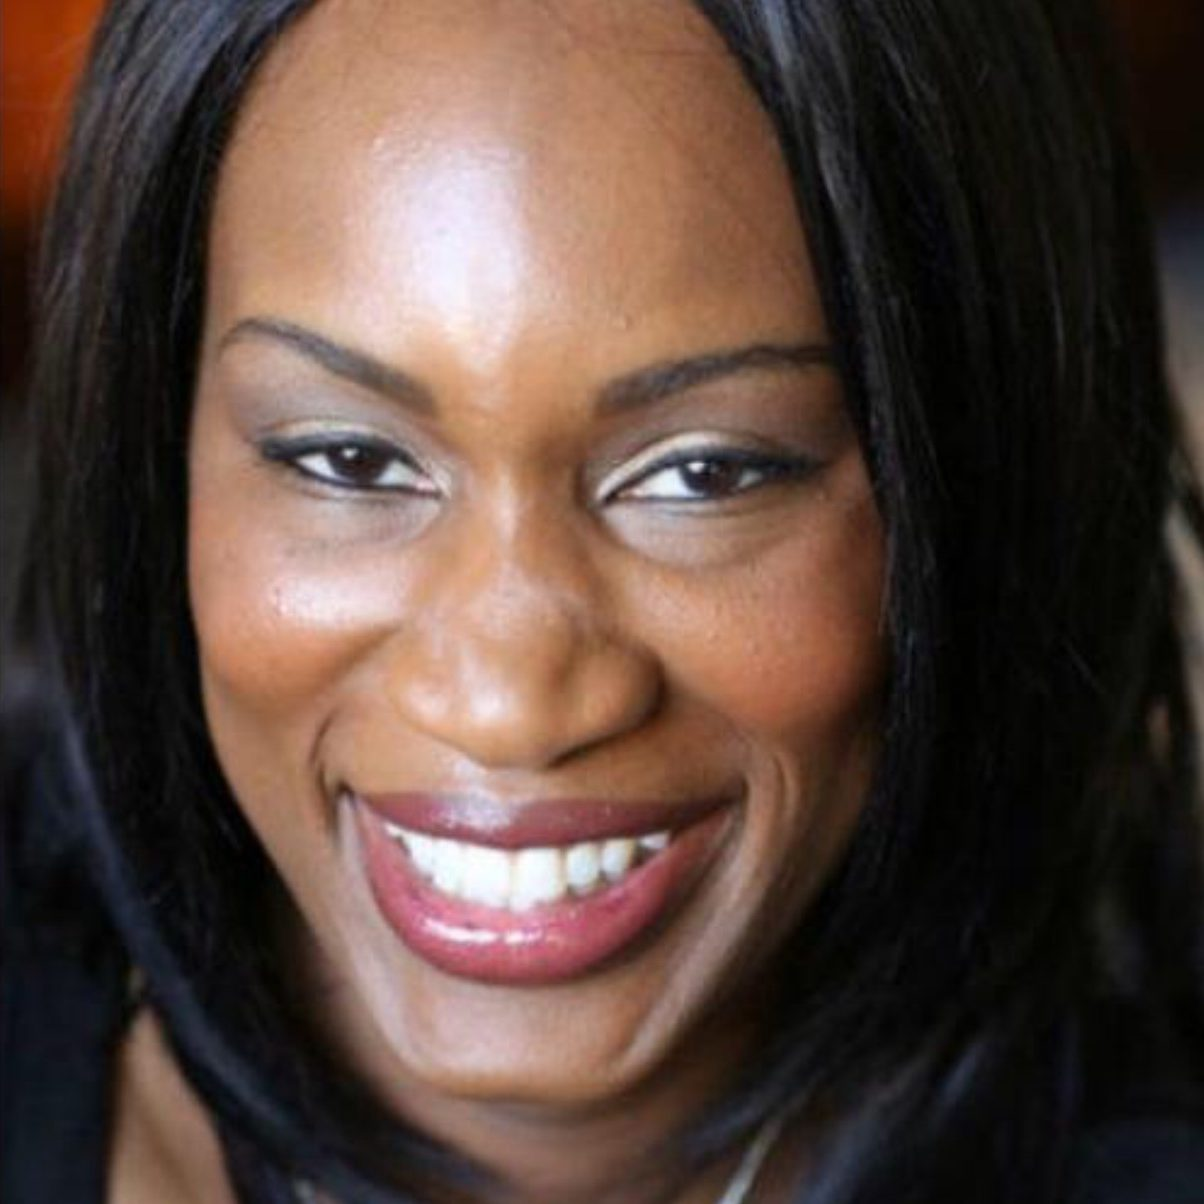 A close up picture of a black woman smiling with straight black hair